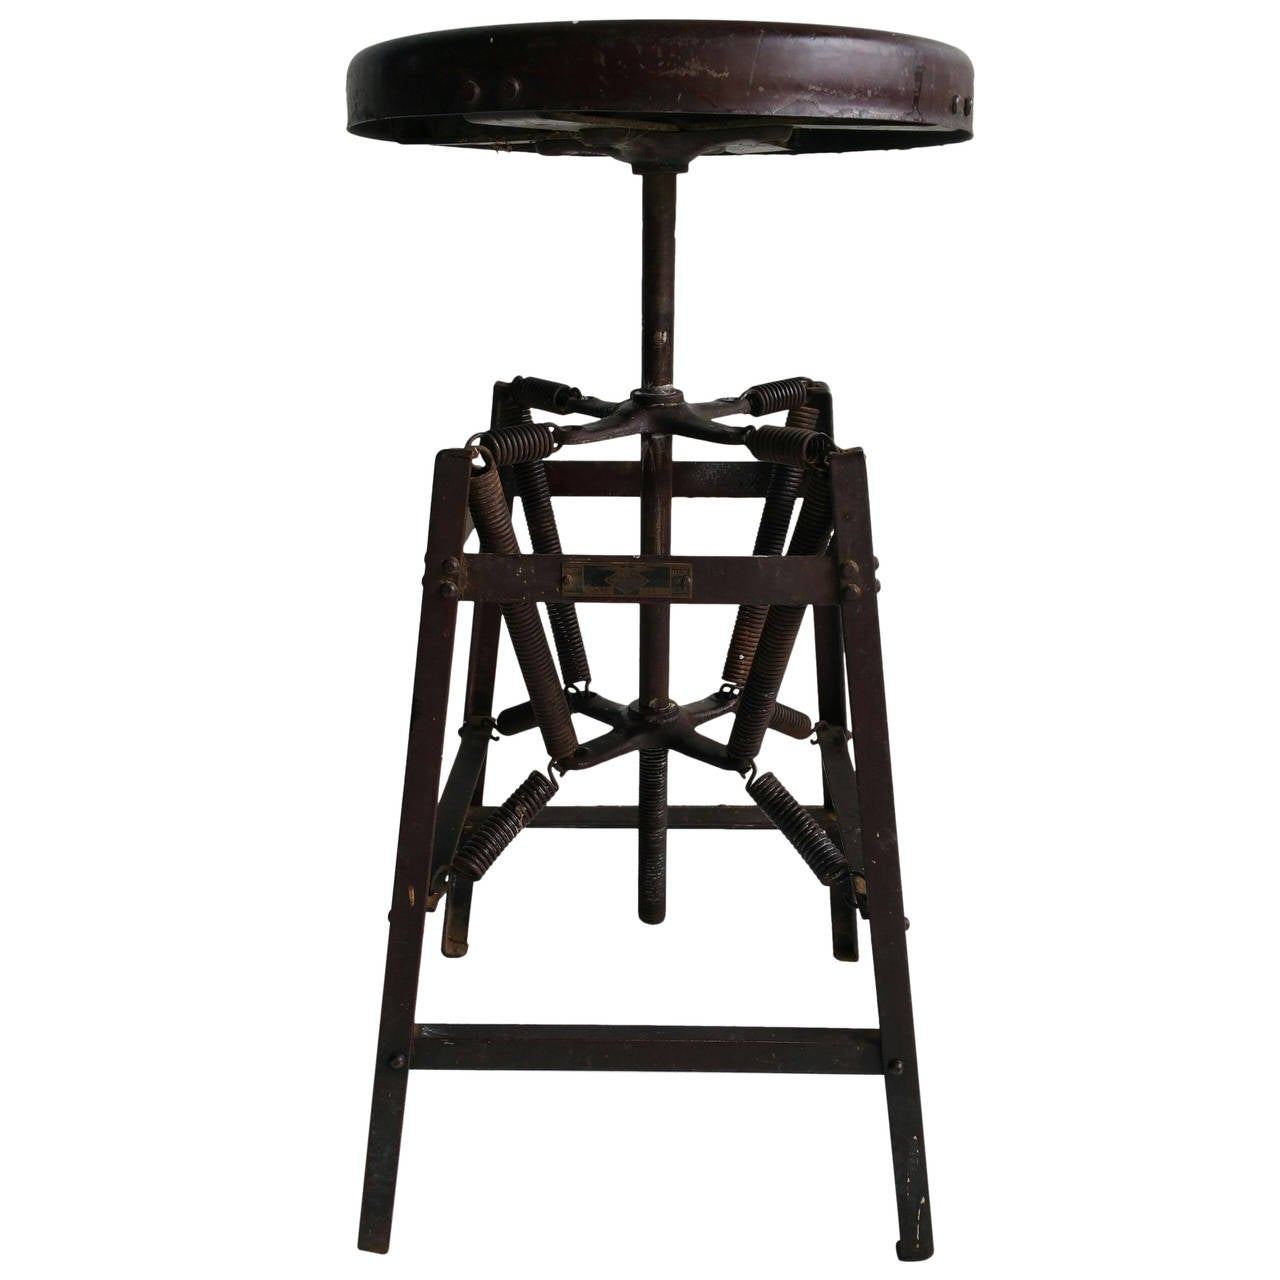 Rare Eight Spring Antique Industrial Stool At 1stdibs